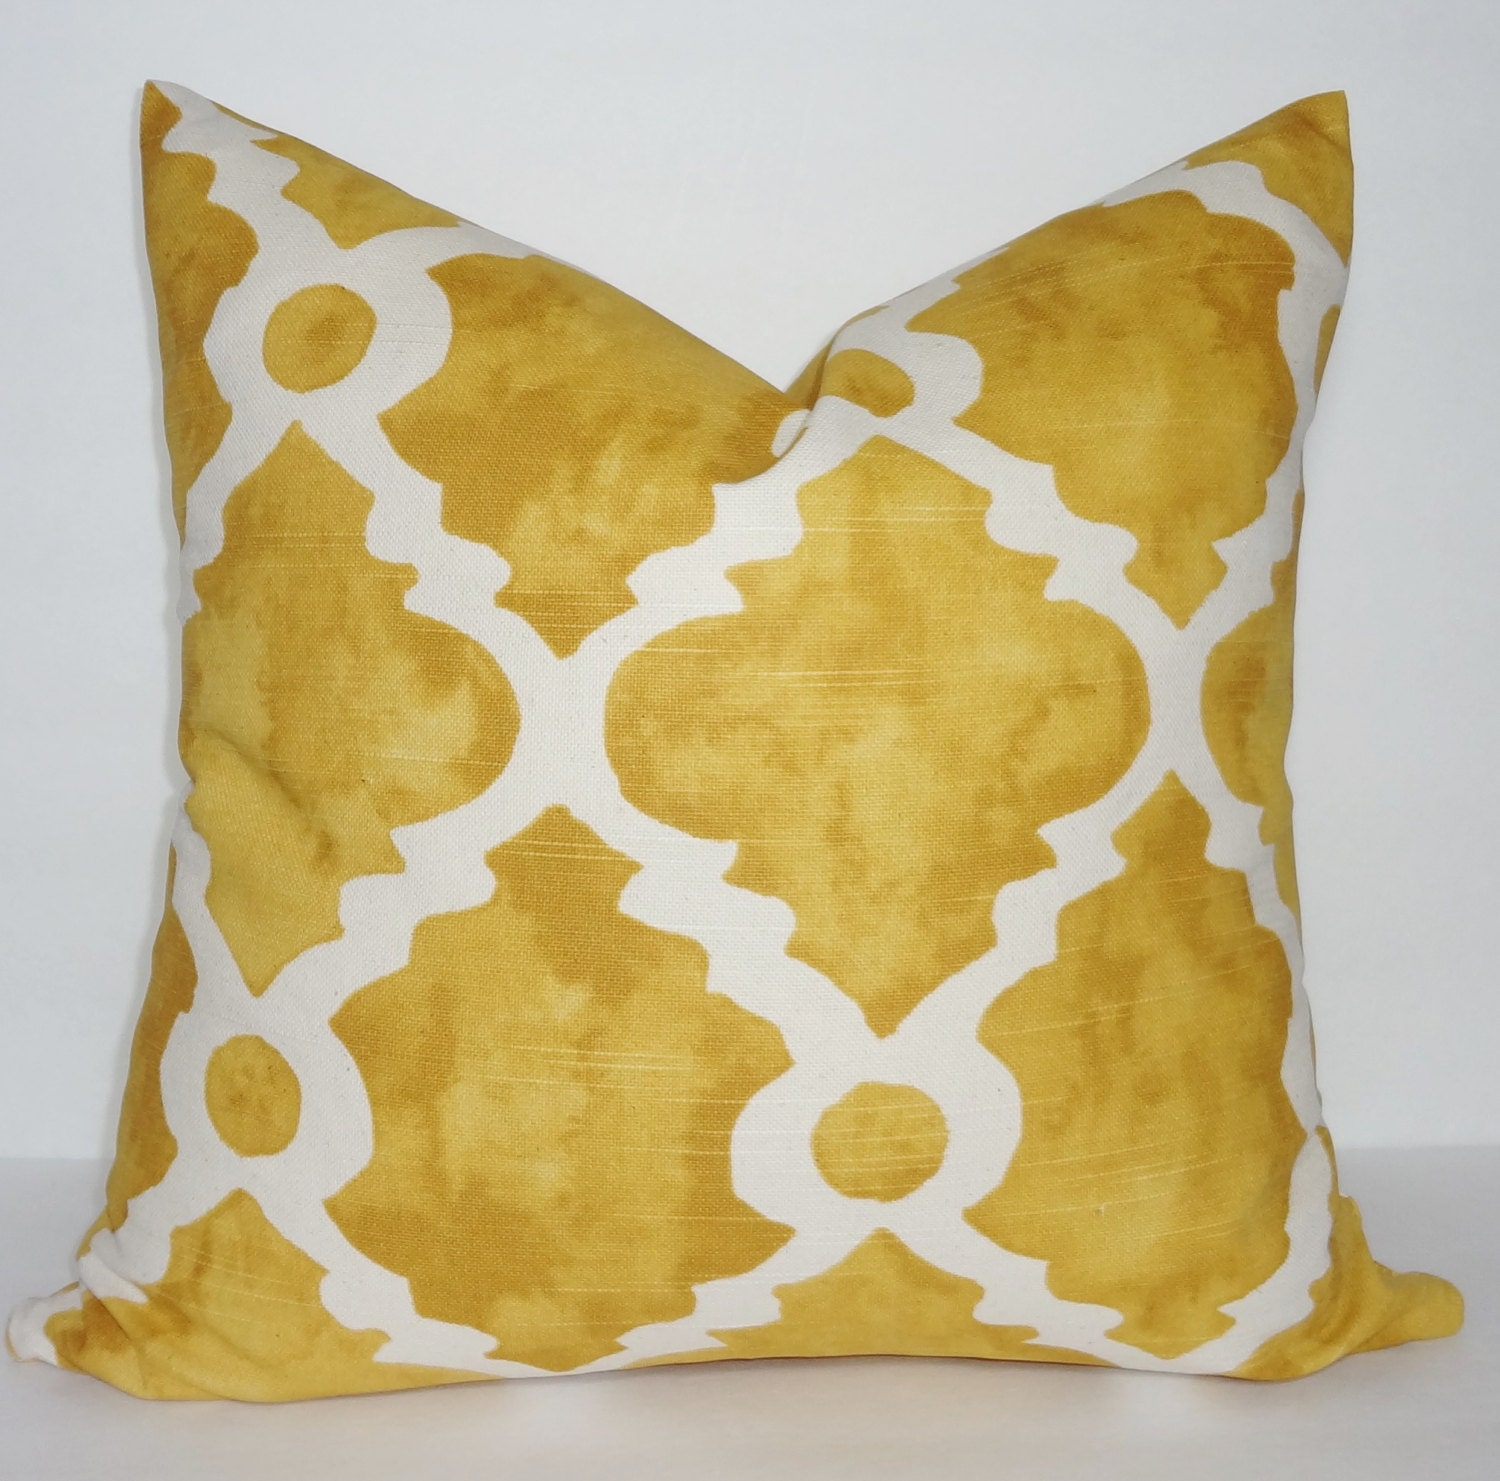 Goldenrod Throw Pillow : Decorative Pillow Cover Golden Rod Geometric Pillow Cover